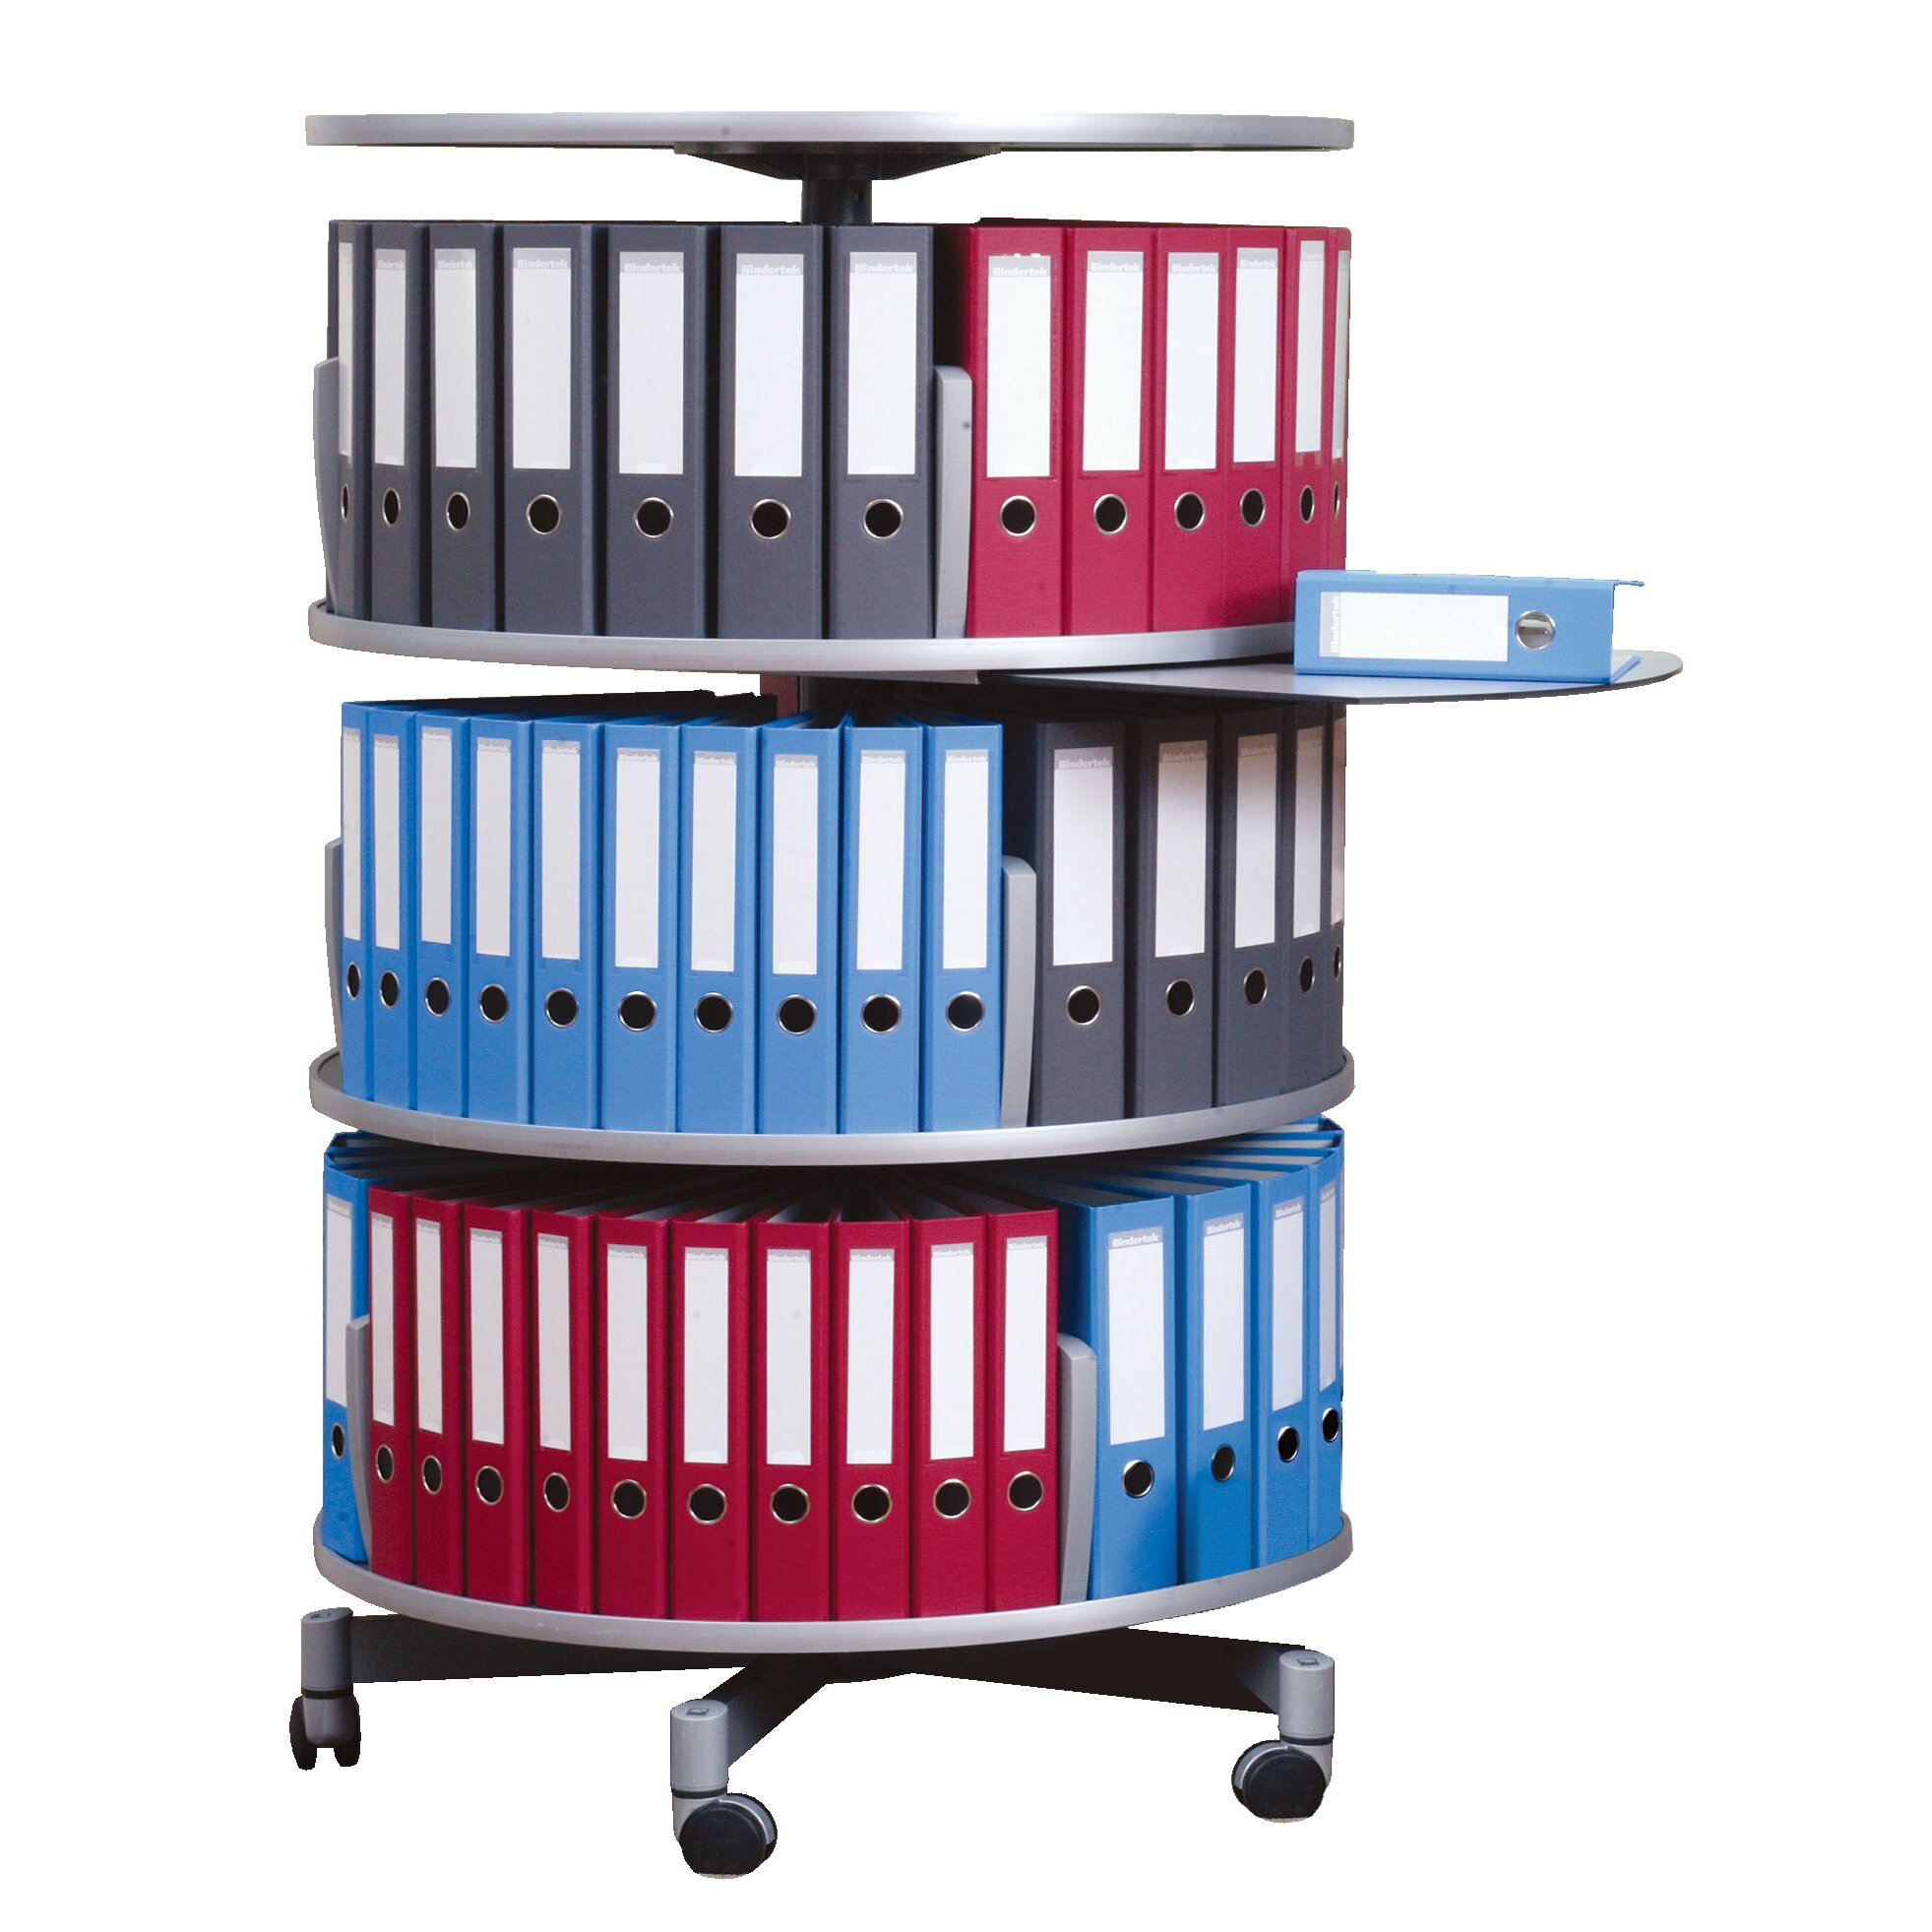 Moll Deluxe Binder & File Carousel Three Tier Shelving